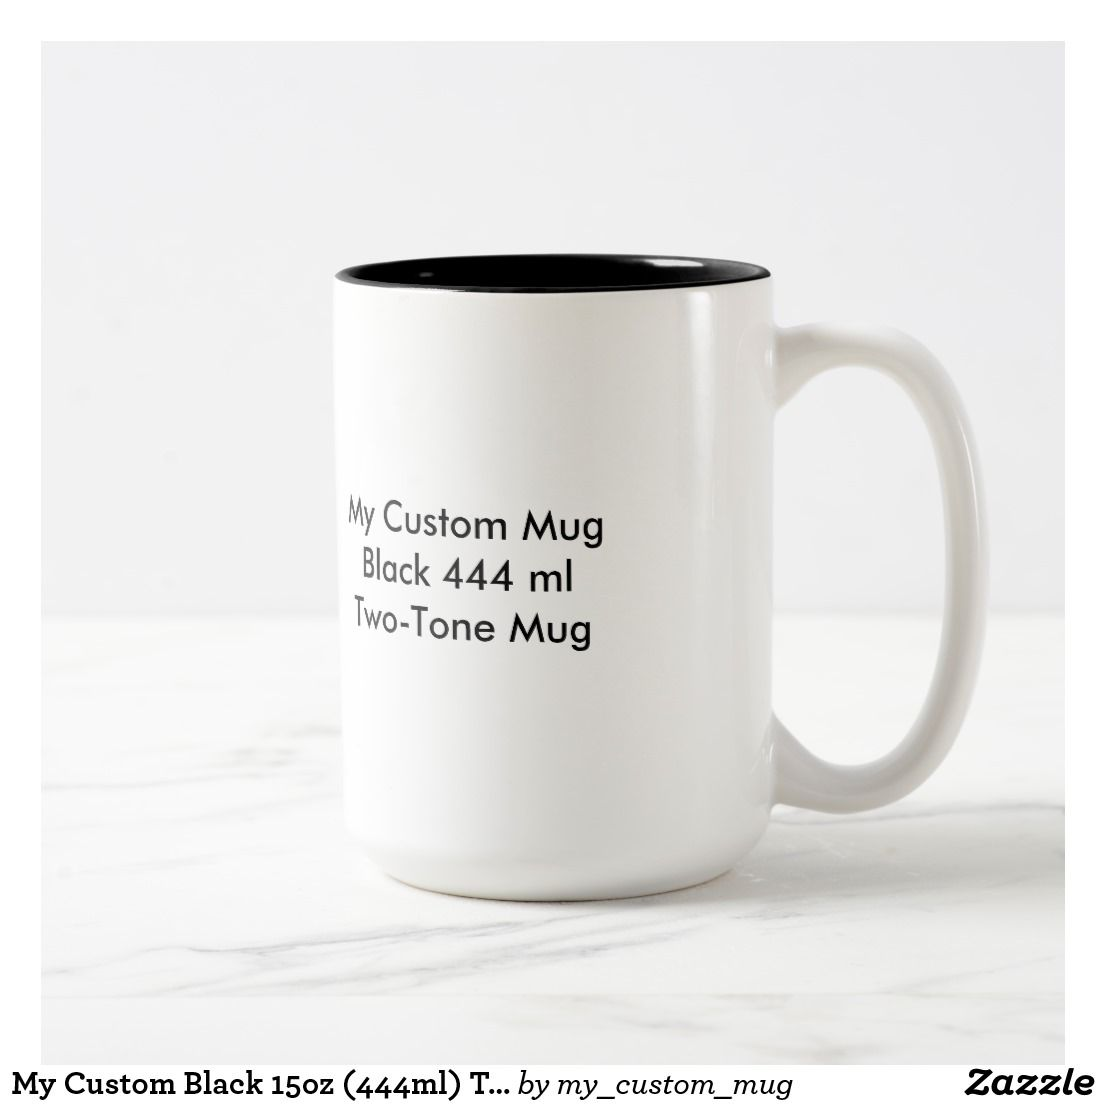 My Custom Black 15oz (444ml) Two-Tone Mug